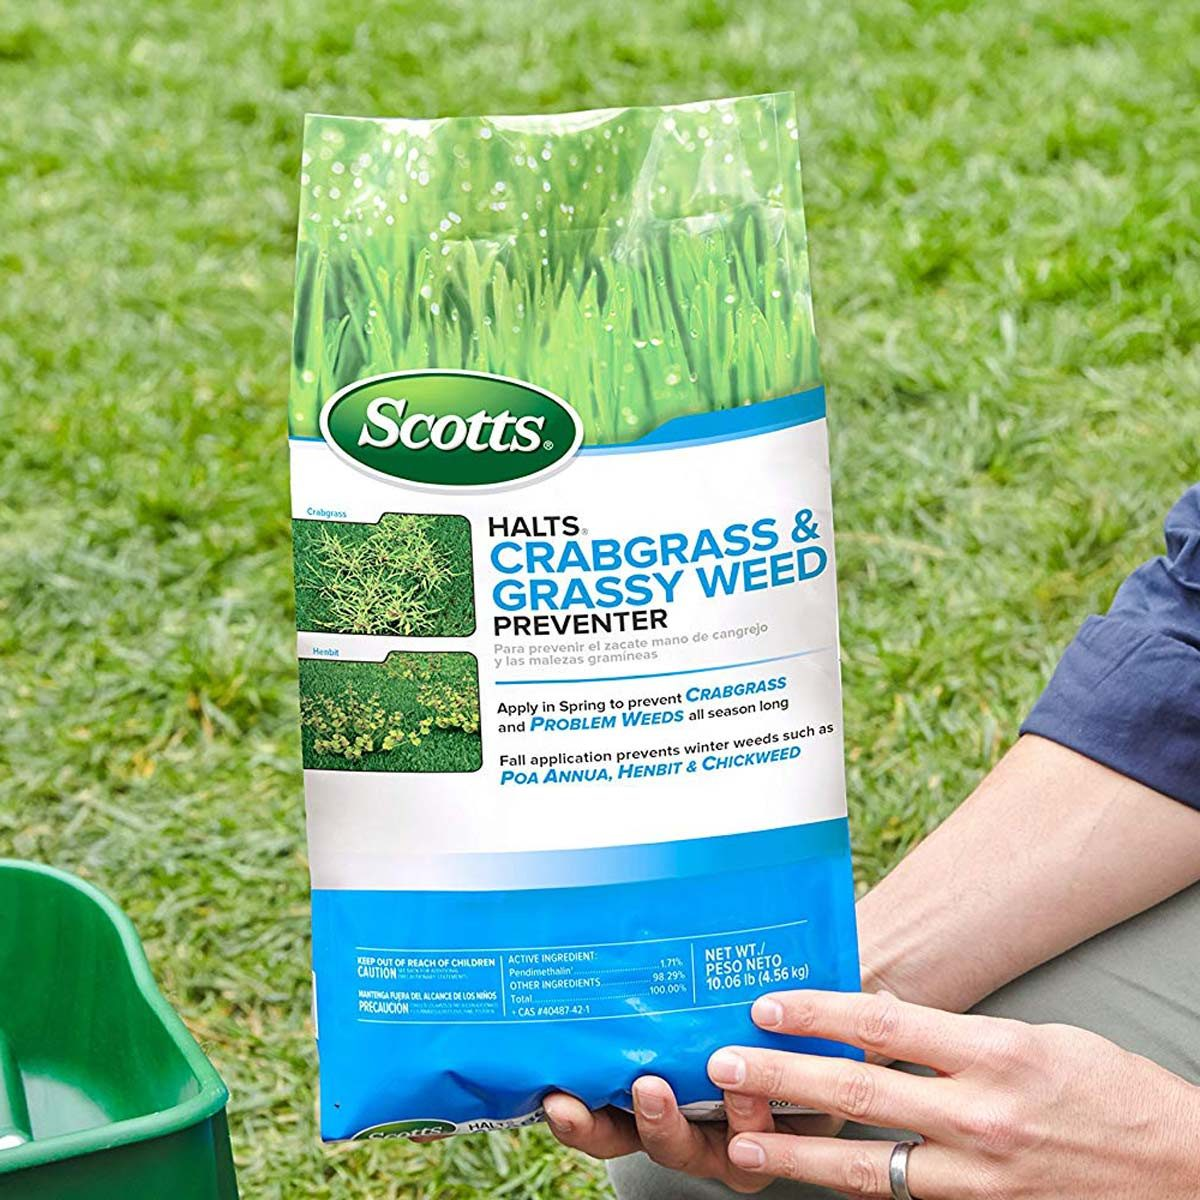 Scotts crabgrass and weed preventer